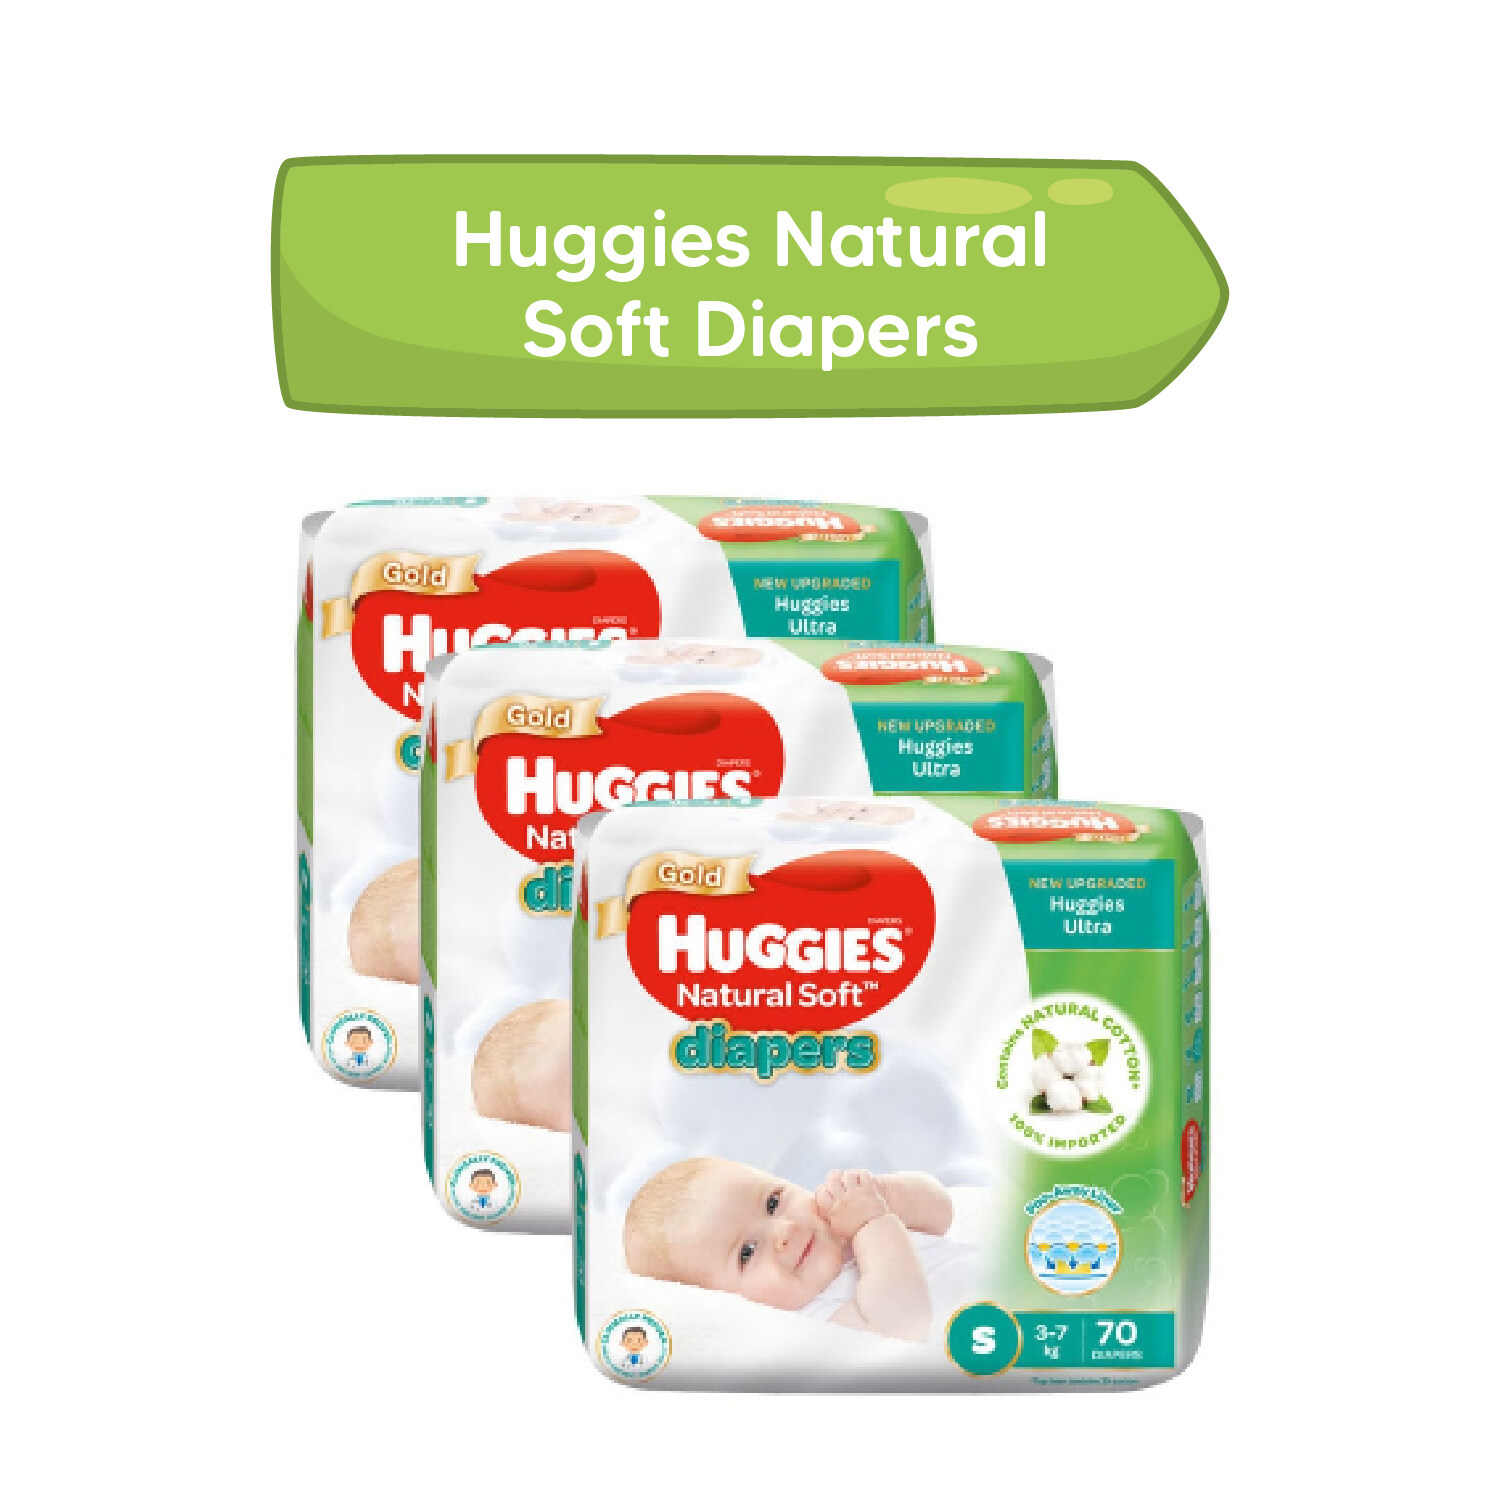 Huggies Natural Soft Diapers (XXL)